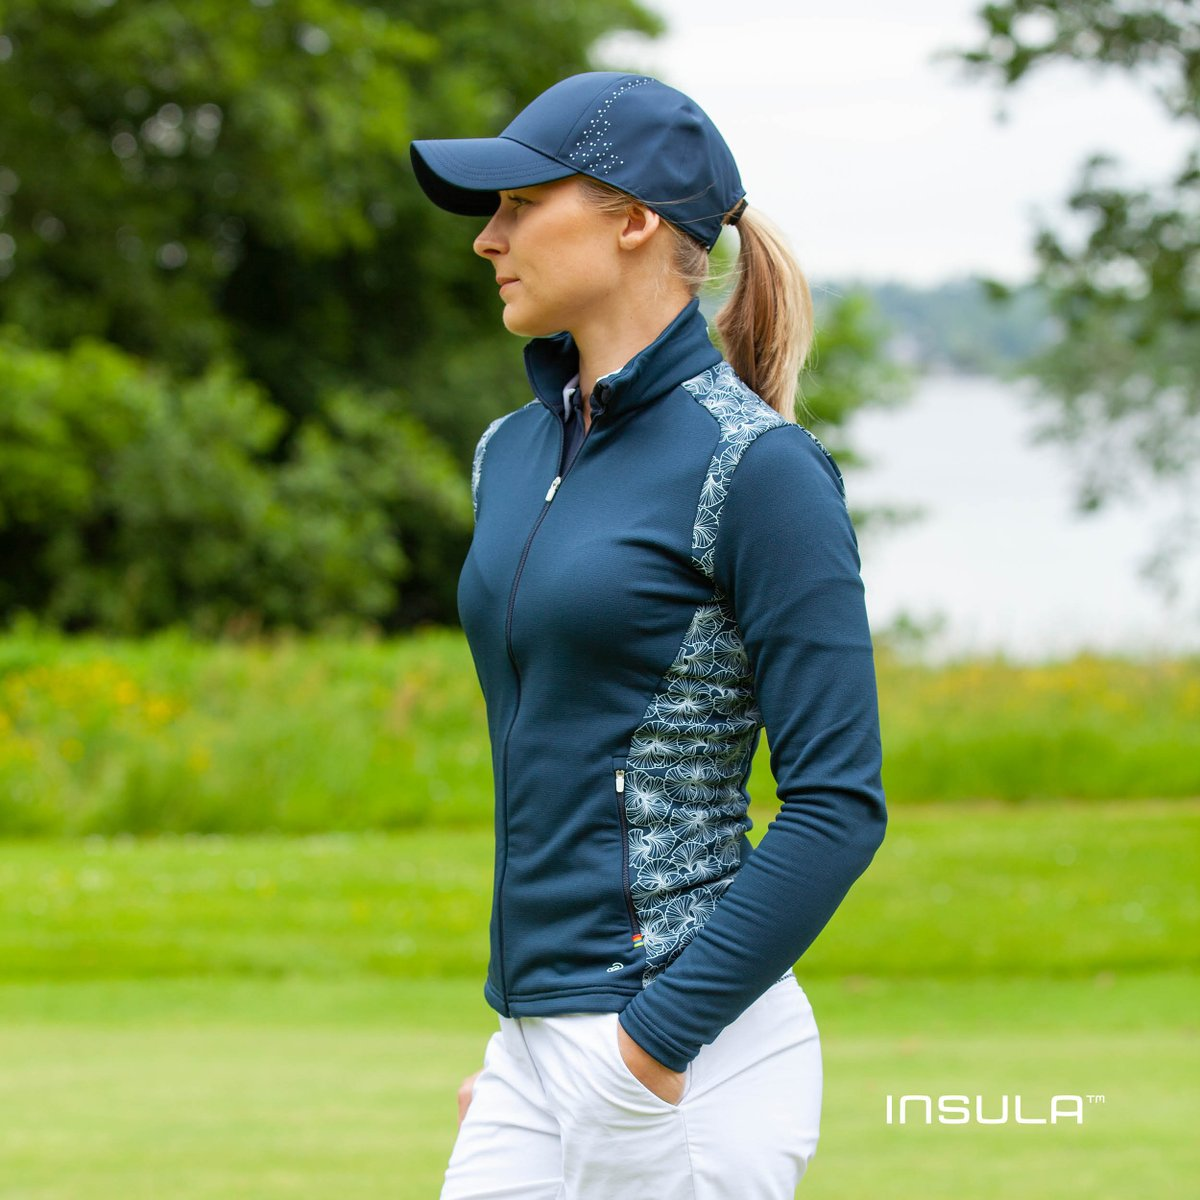 DISCOVER DOROTHY 🔍 ✅ Thermal regulation ✅ Extremely stretchy ✅ Maximum breathability For more information on our INSULA™ range, please visit your local stockist or visit galvingreen.com #galvingreen